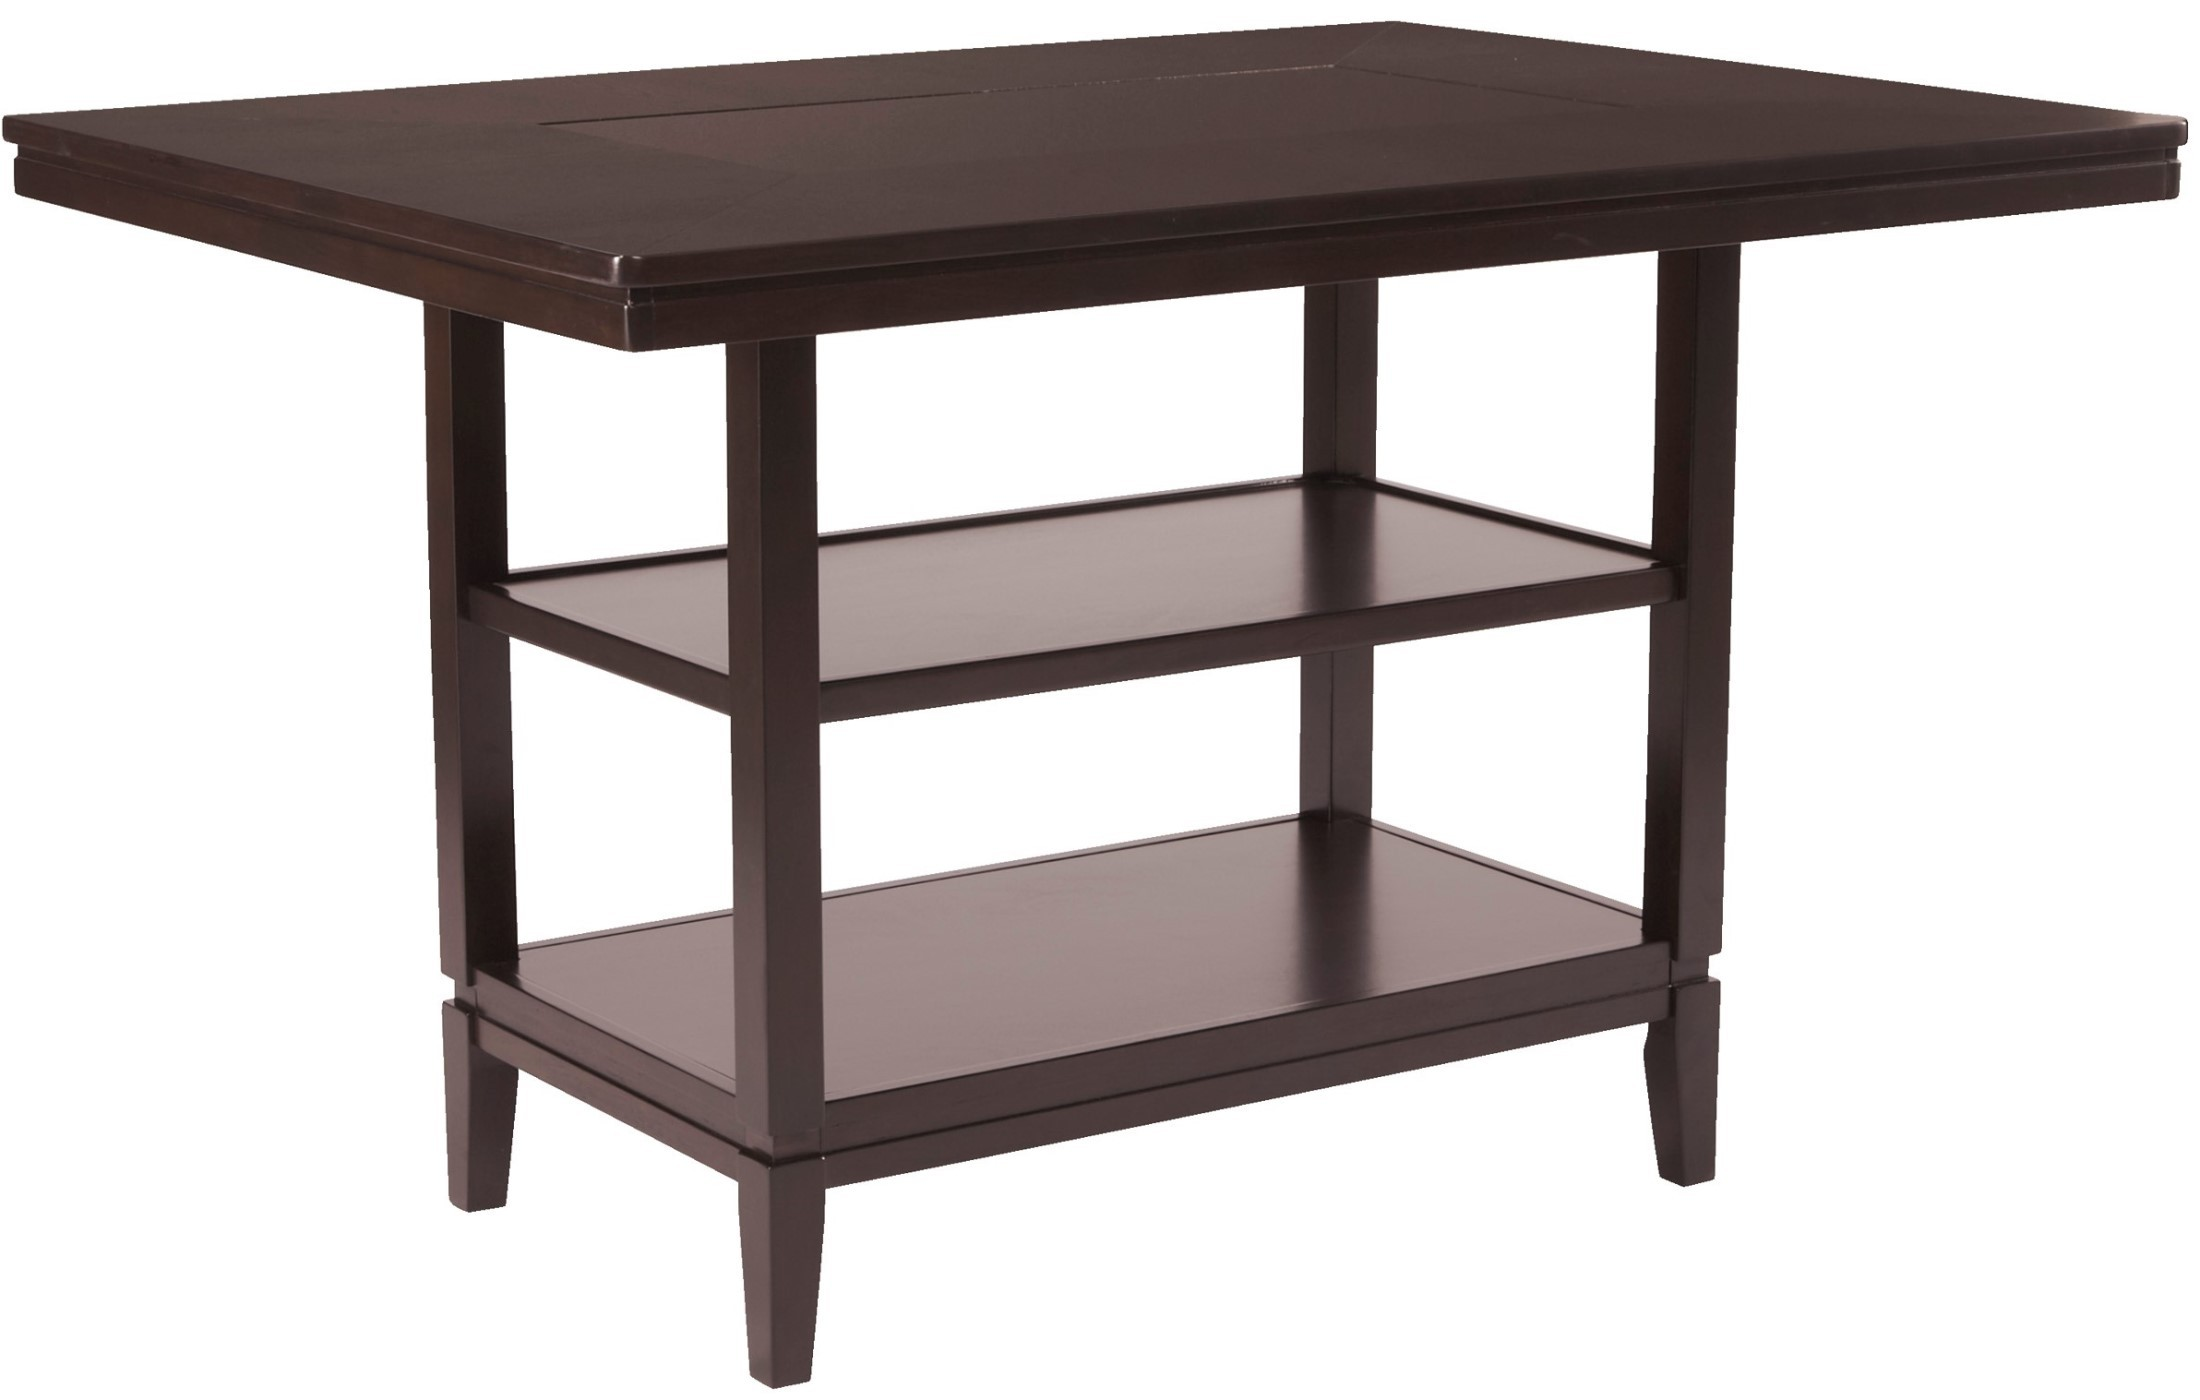 Trishelle Rectangular Counter Dining Room Set from Ashley  : 12039 from colemanfurniture.com size 2200 x 1400 jpeg 173kB